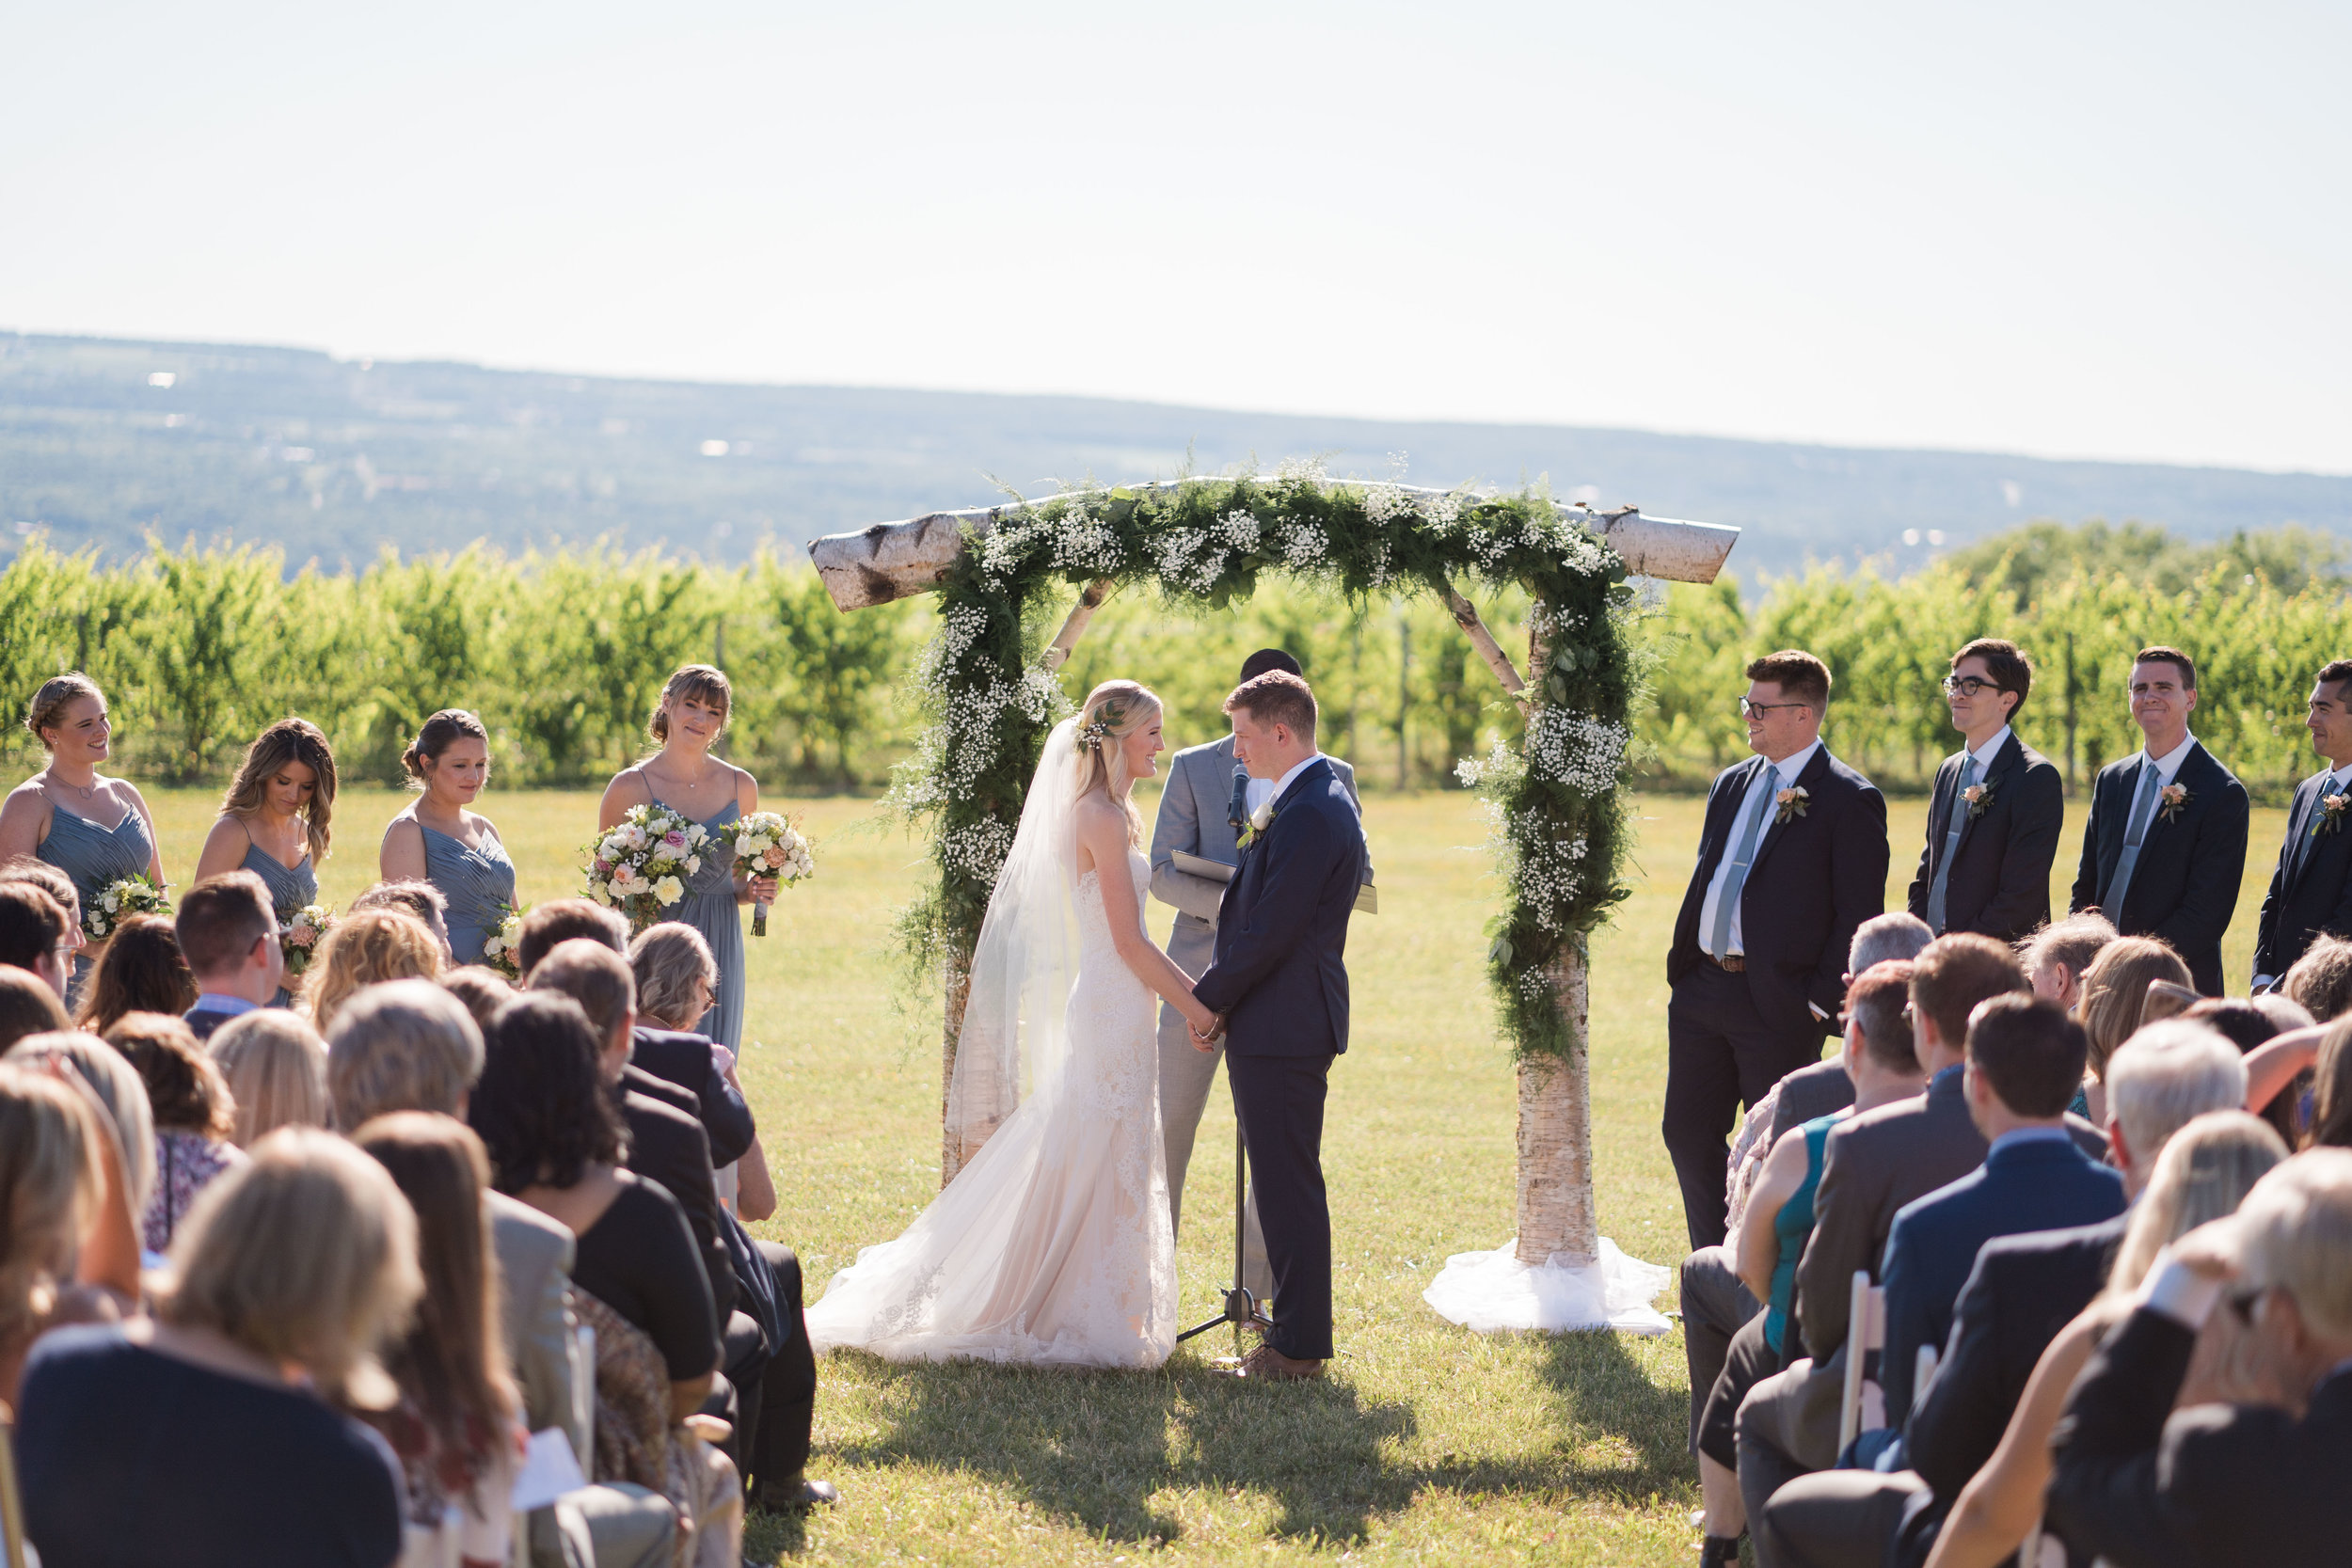 Wedding Photography at Wagner Vineyards Ginny Lee Cafe Finger Lakes by Stefan Ludwig Photography-59.jpg